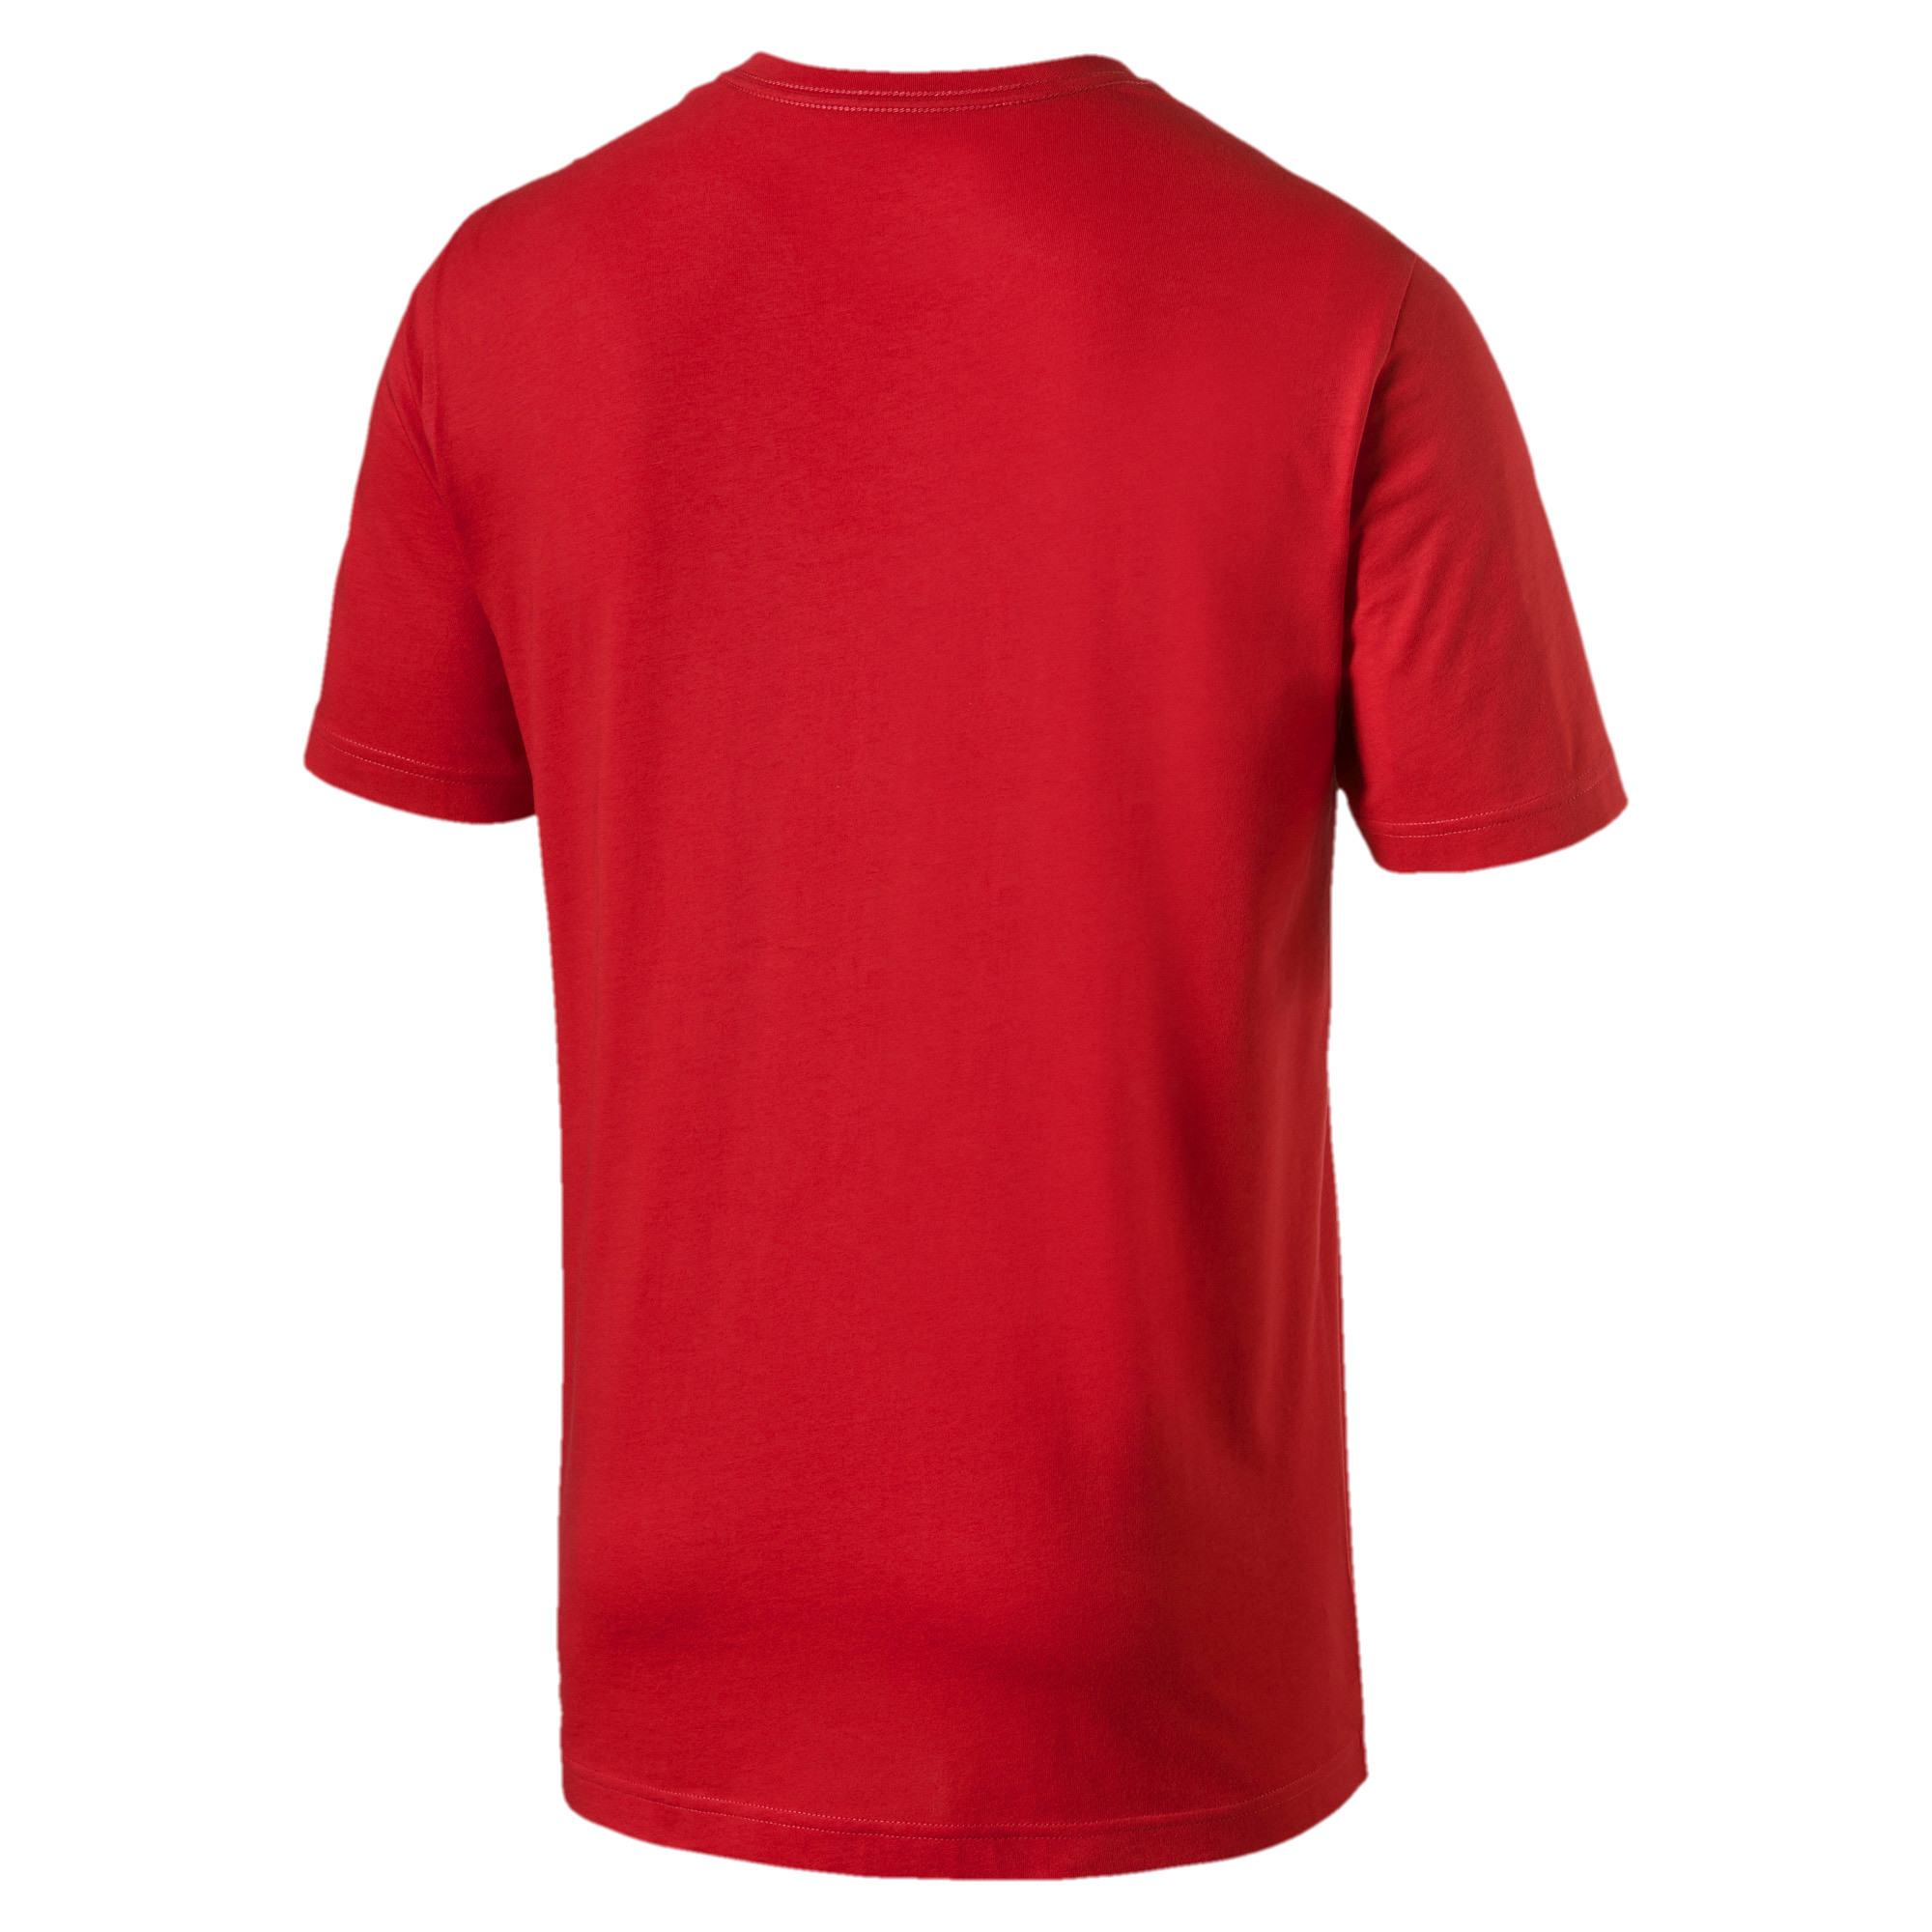 PUMA-Essentials-Men-039-s-V-Neck-Tee-Men-Tee-Basics thumbnail 20